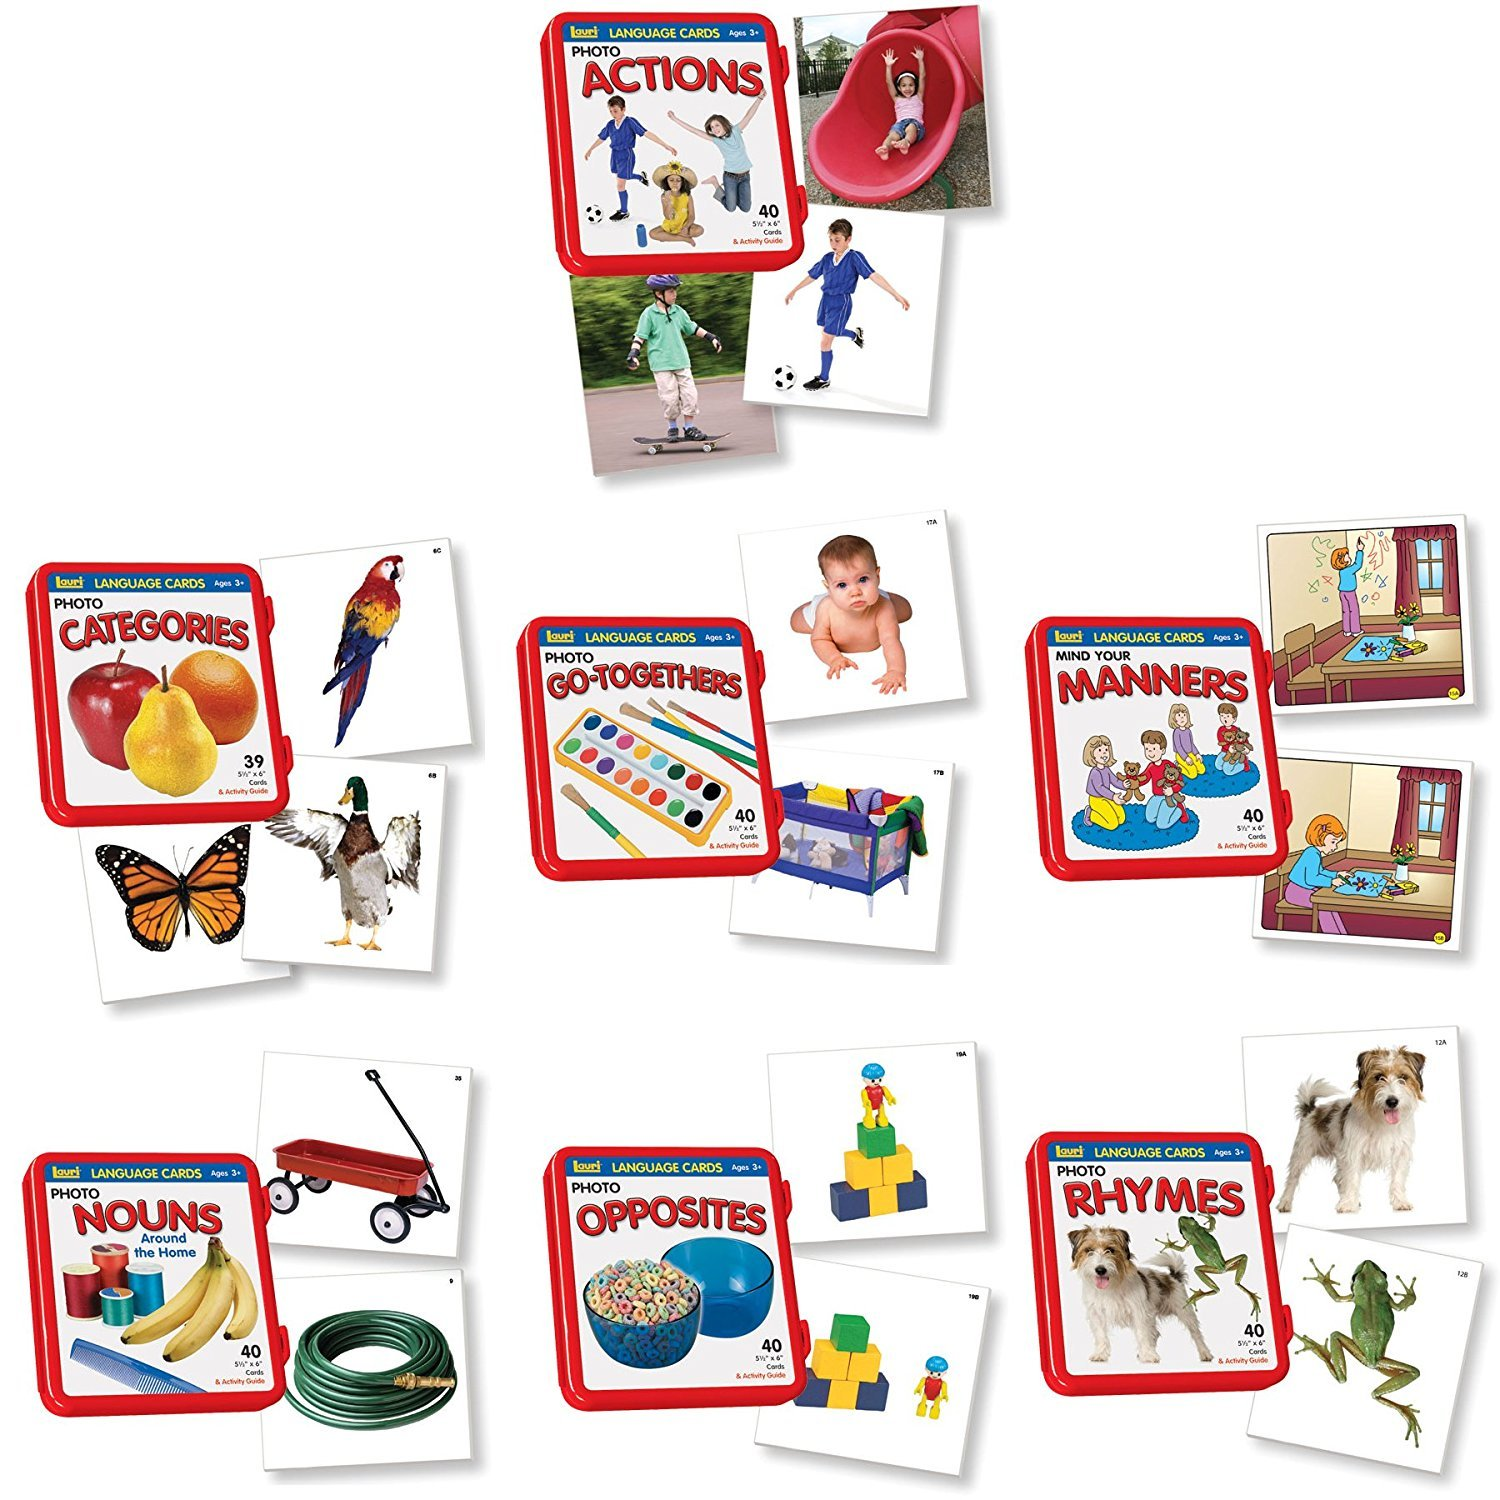 低価格で大人気の [ラウリ]Lauri Language Cards Language Bundle with Actions, Categories, Actions, Rhymes GoTogethers, Manners, Nouns, Opposites, Rhymes 7133270 [並行輸入品] B0179ZCL0U, 京都電業株式会社:de4a196e --- mrplusfm.net